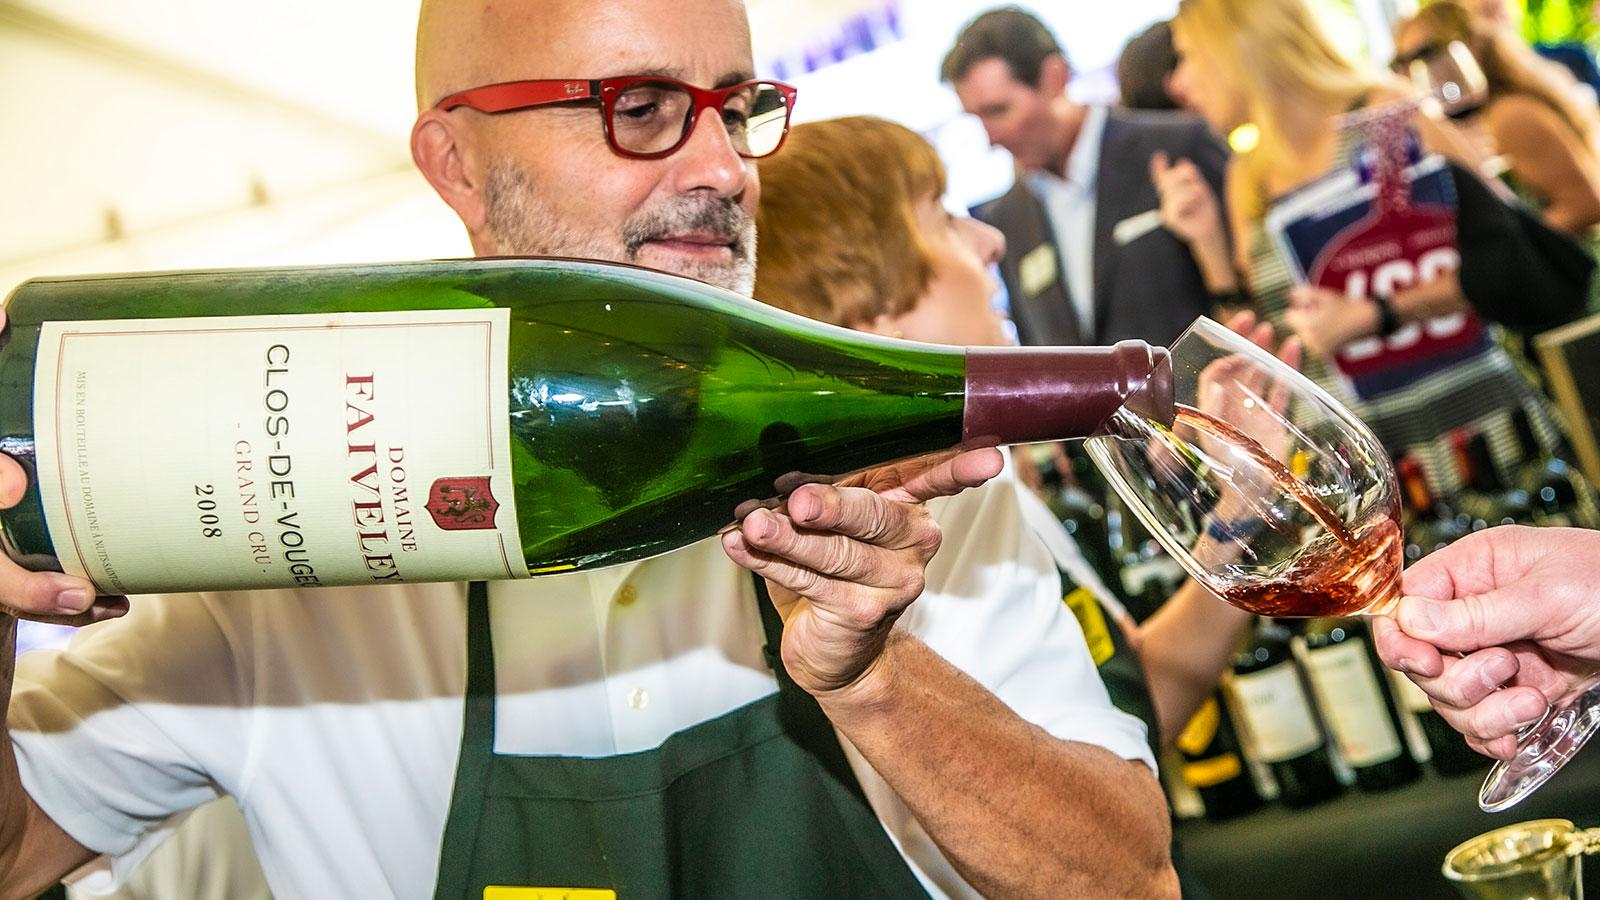 Naples Winter Wine Festival Raises over $20 Million for Children's Charities